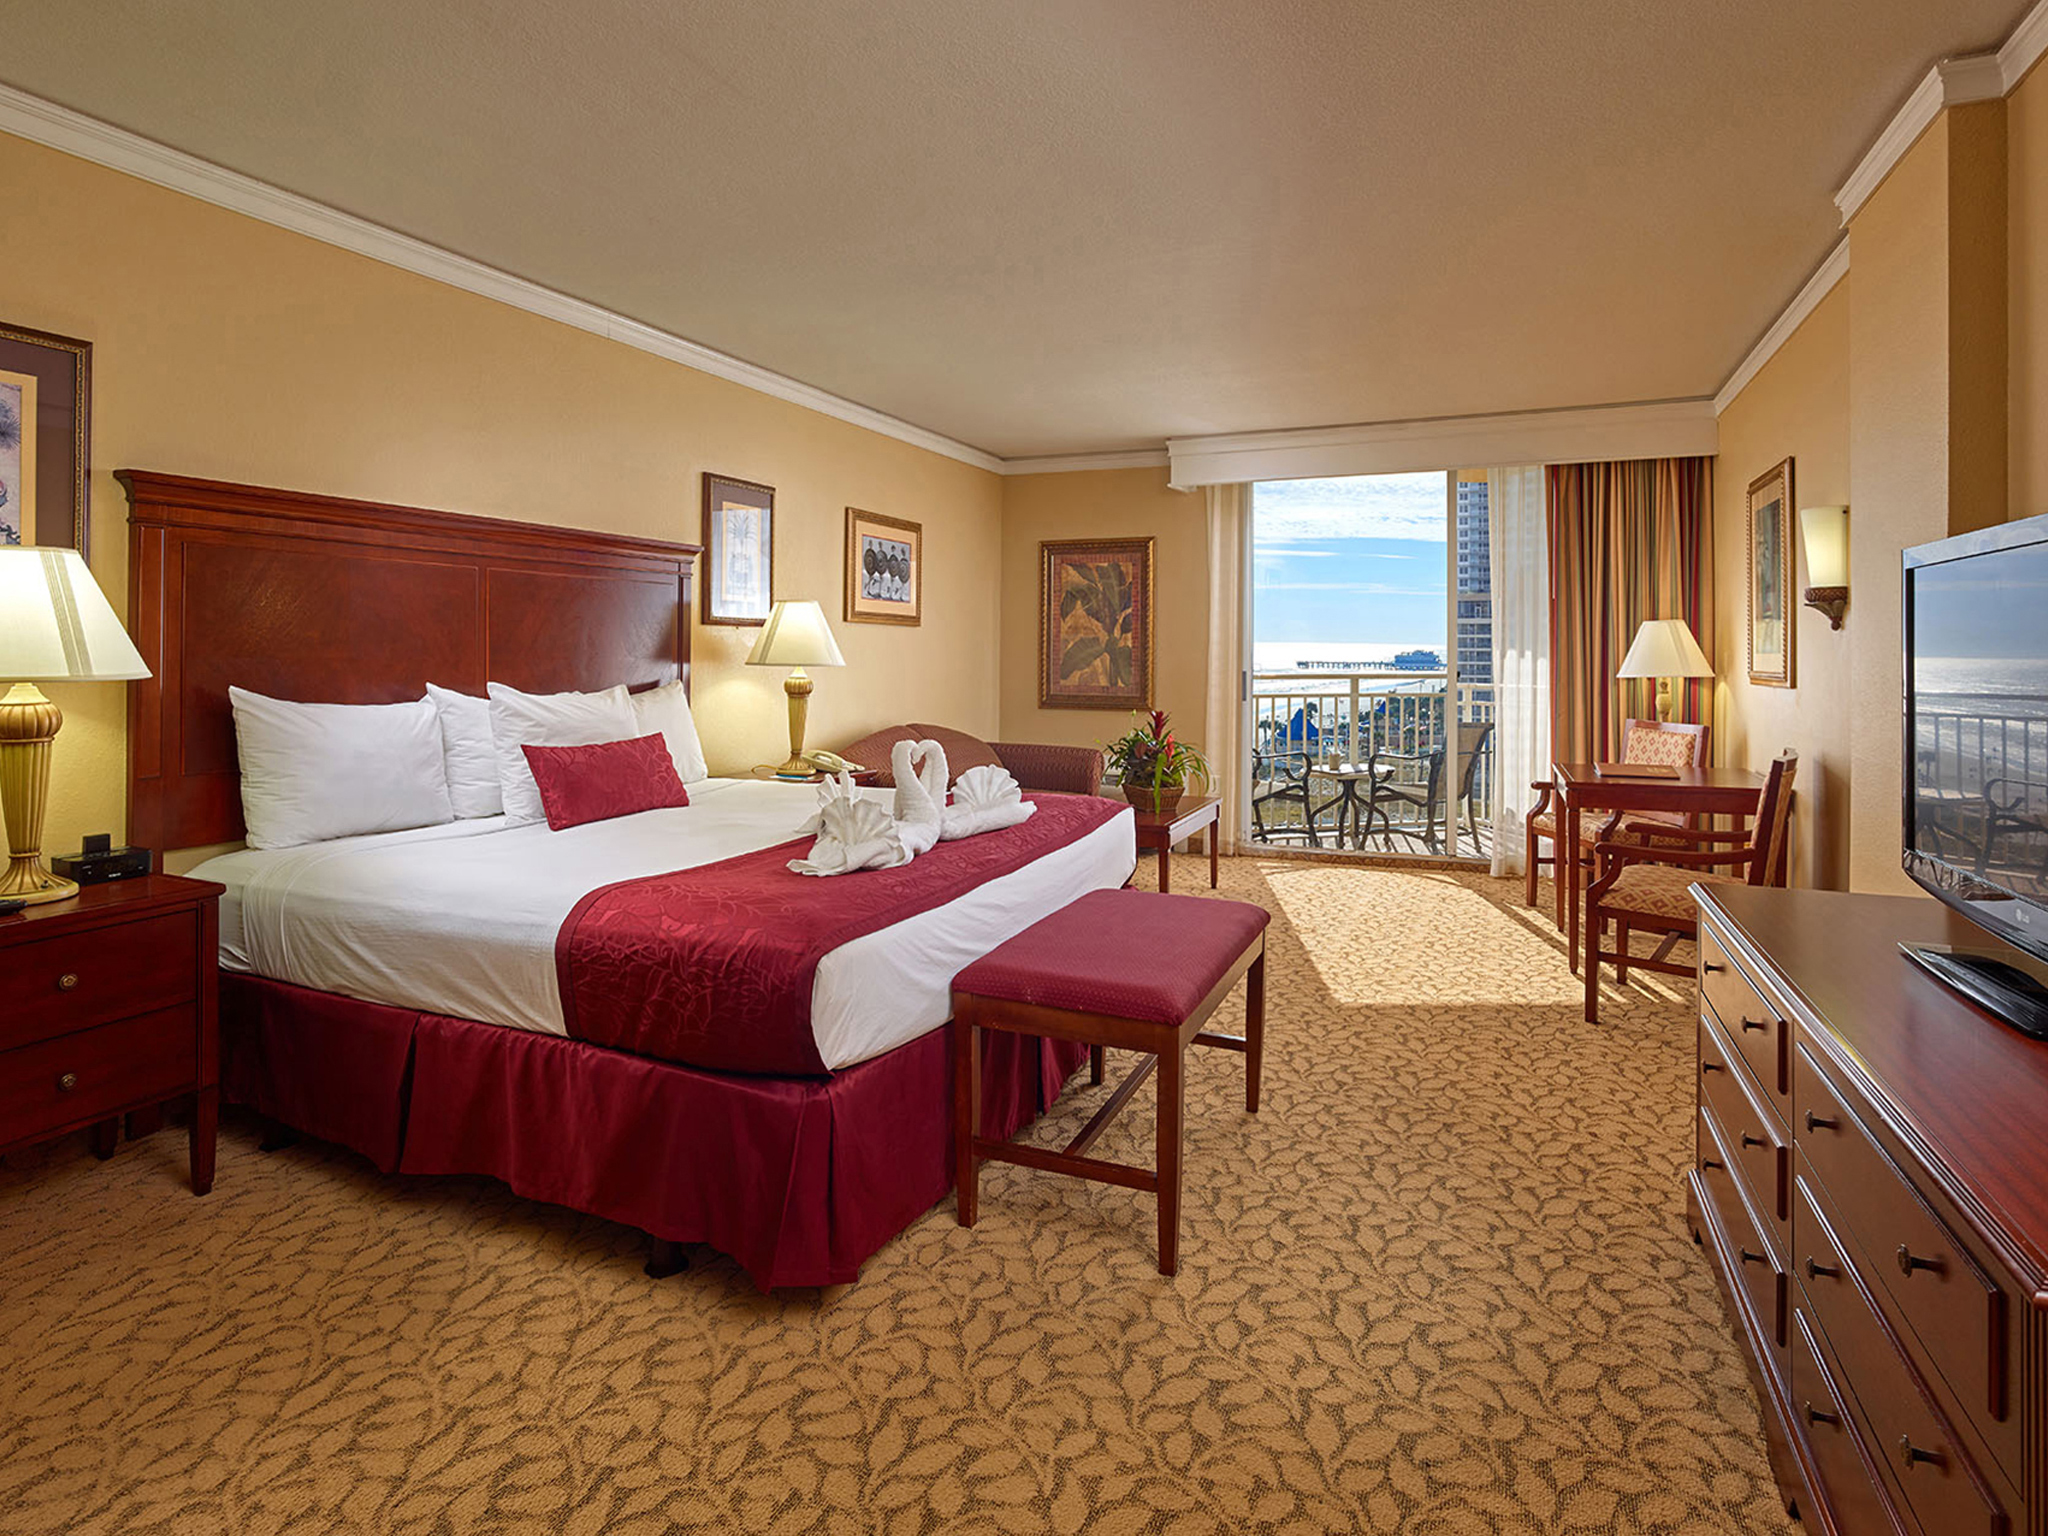 Ocean View King Room with Balcony